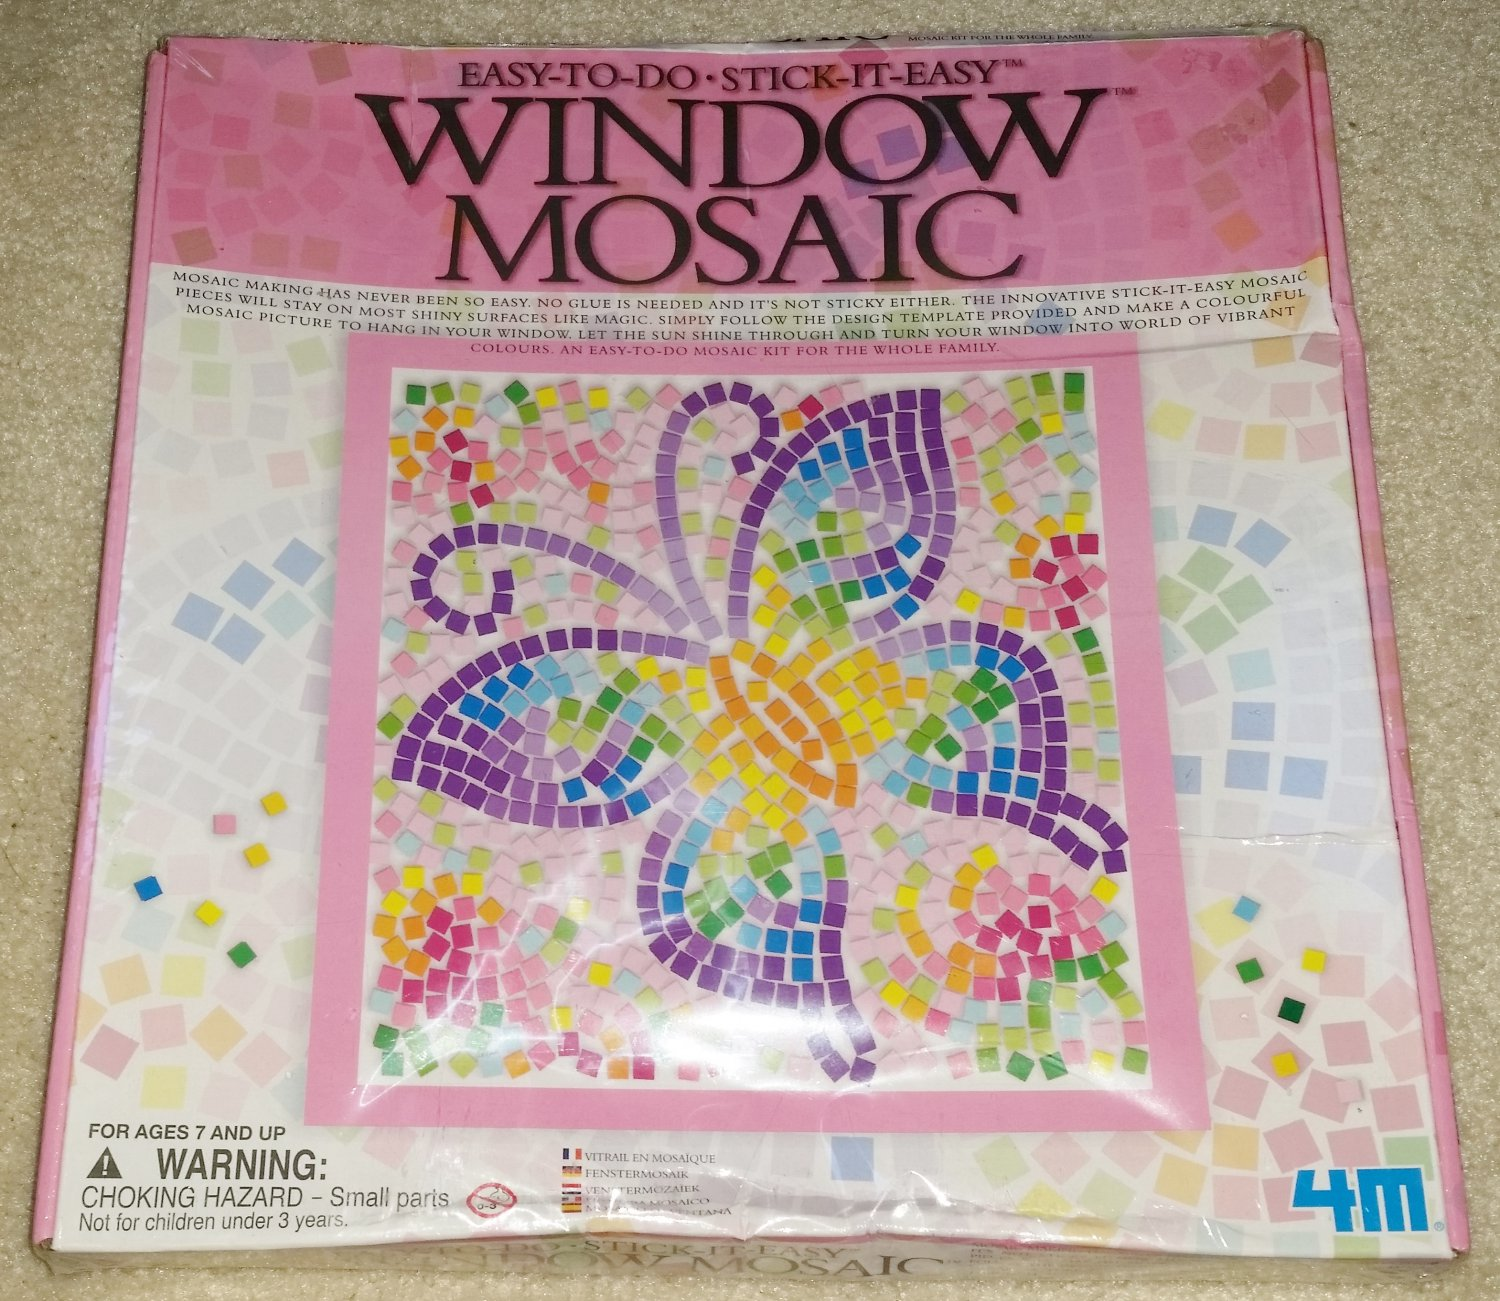 Easy To Do - Stick It Easy Window Mosaic Butterfly 04526B - 4M!